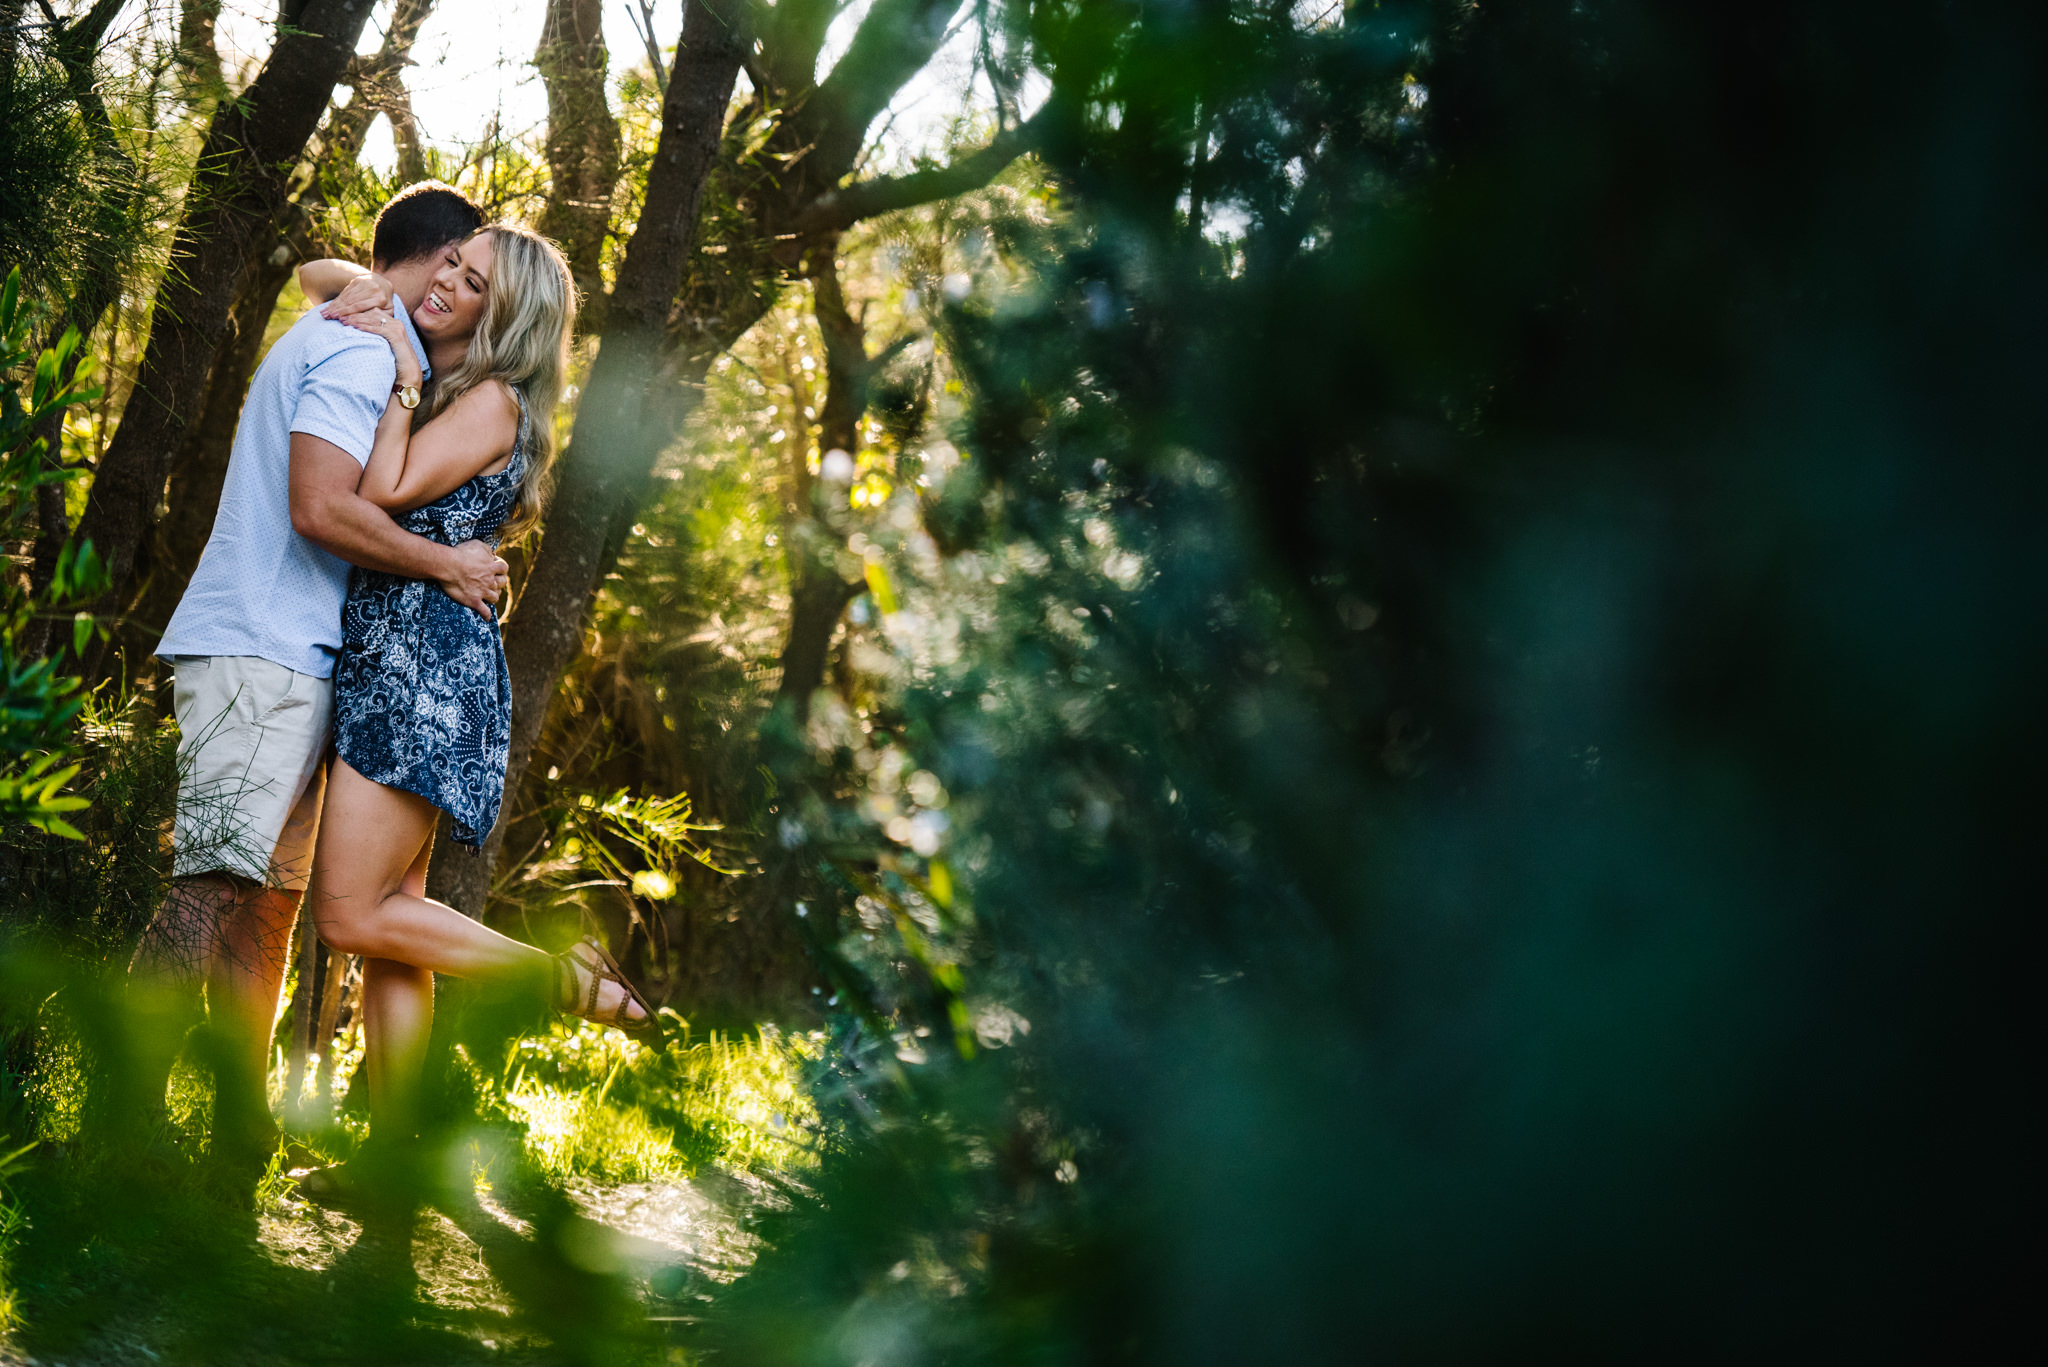 Engaged couple in forest scene